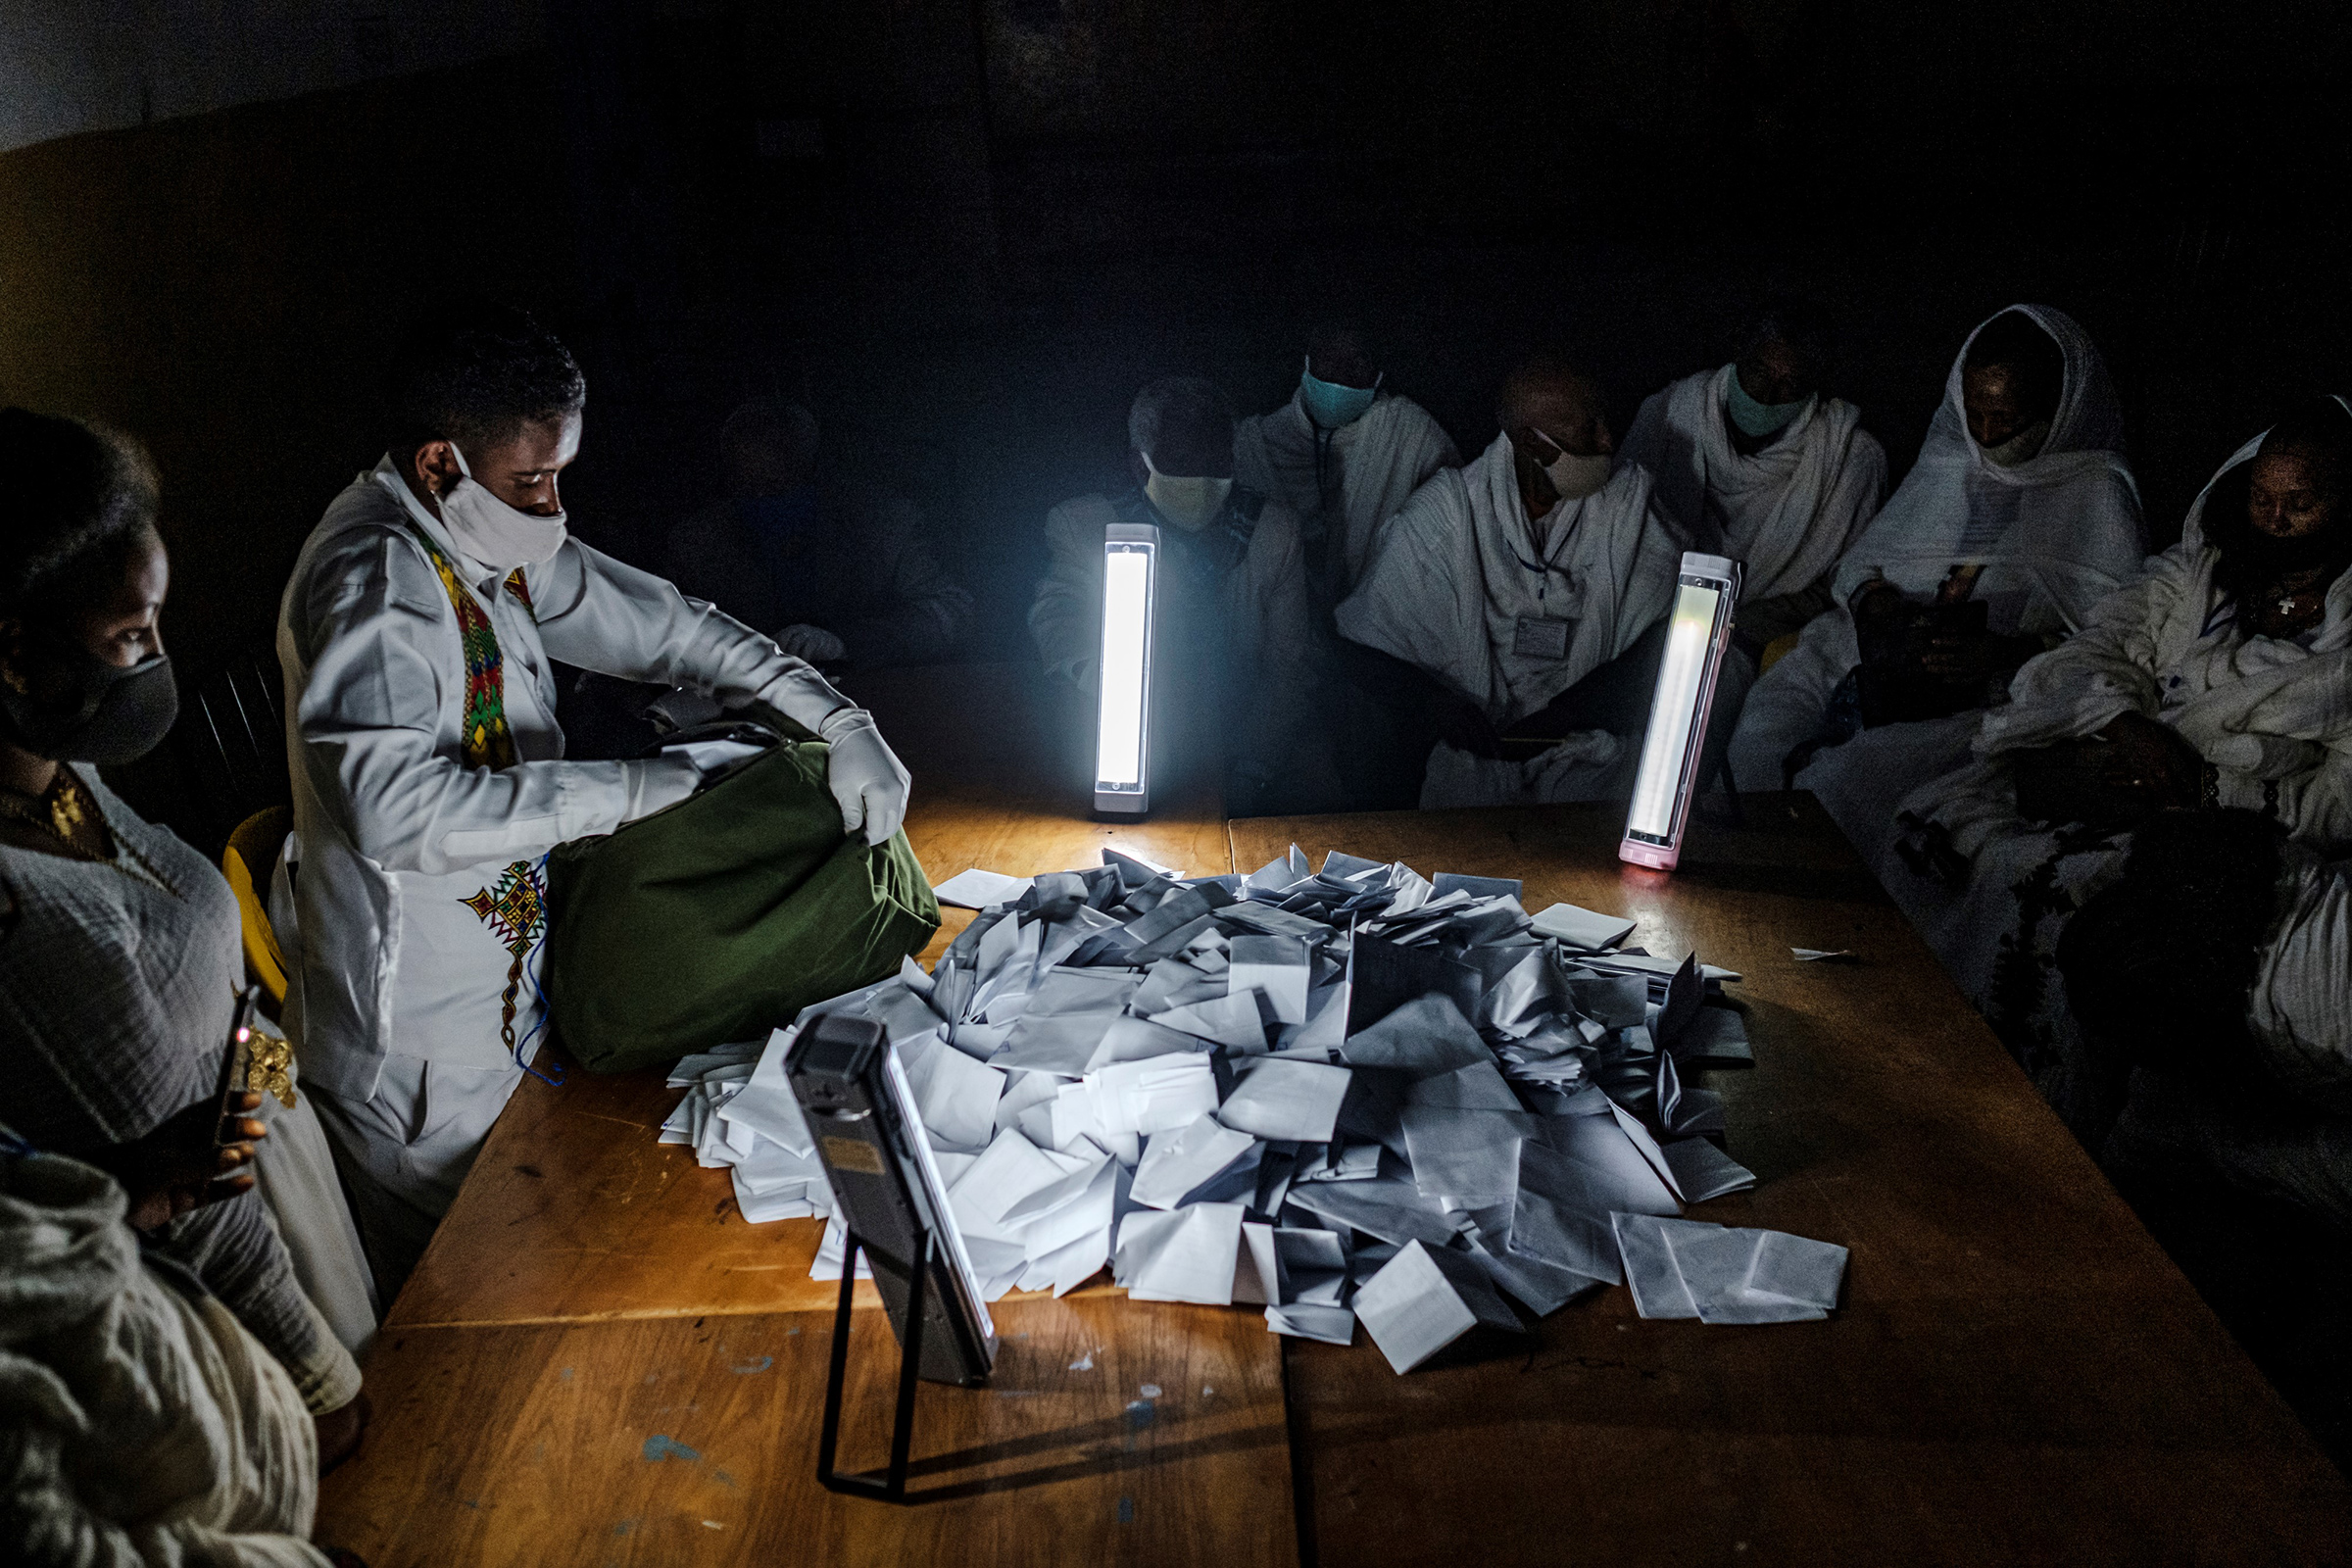 Electoral officials open a ballot box at a polling station on the day of Tigray's regional elections, on Sept. 9, 2020 in Mekele